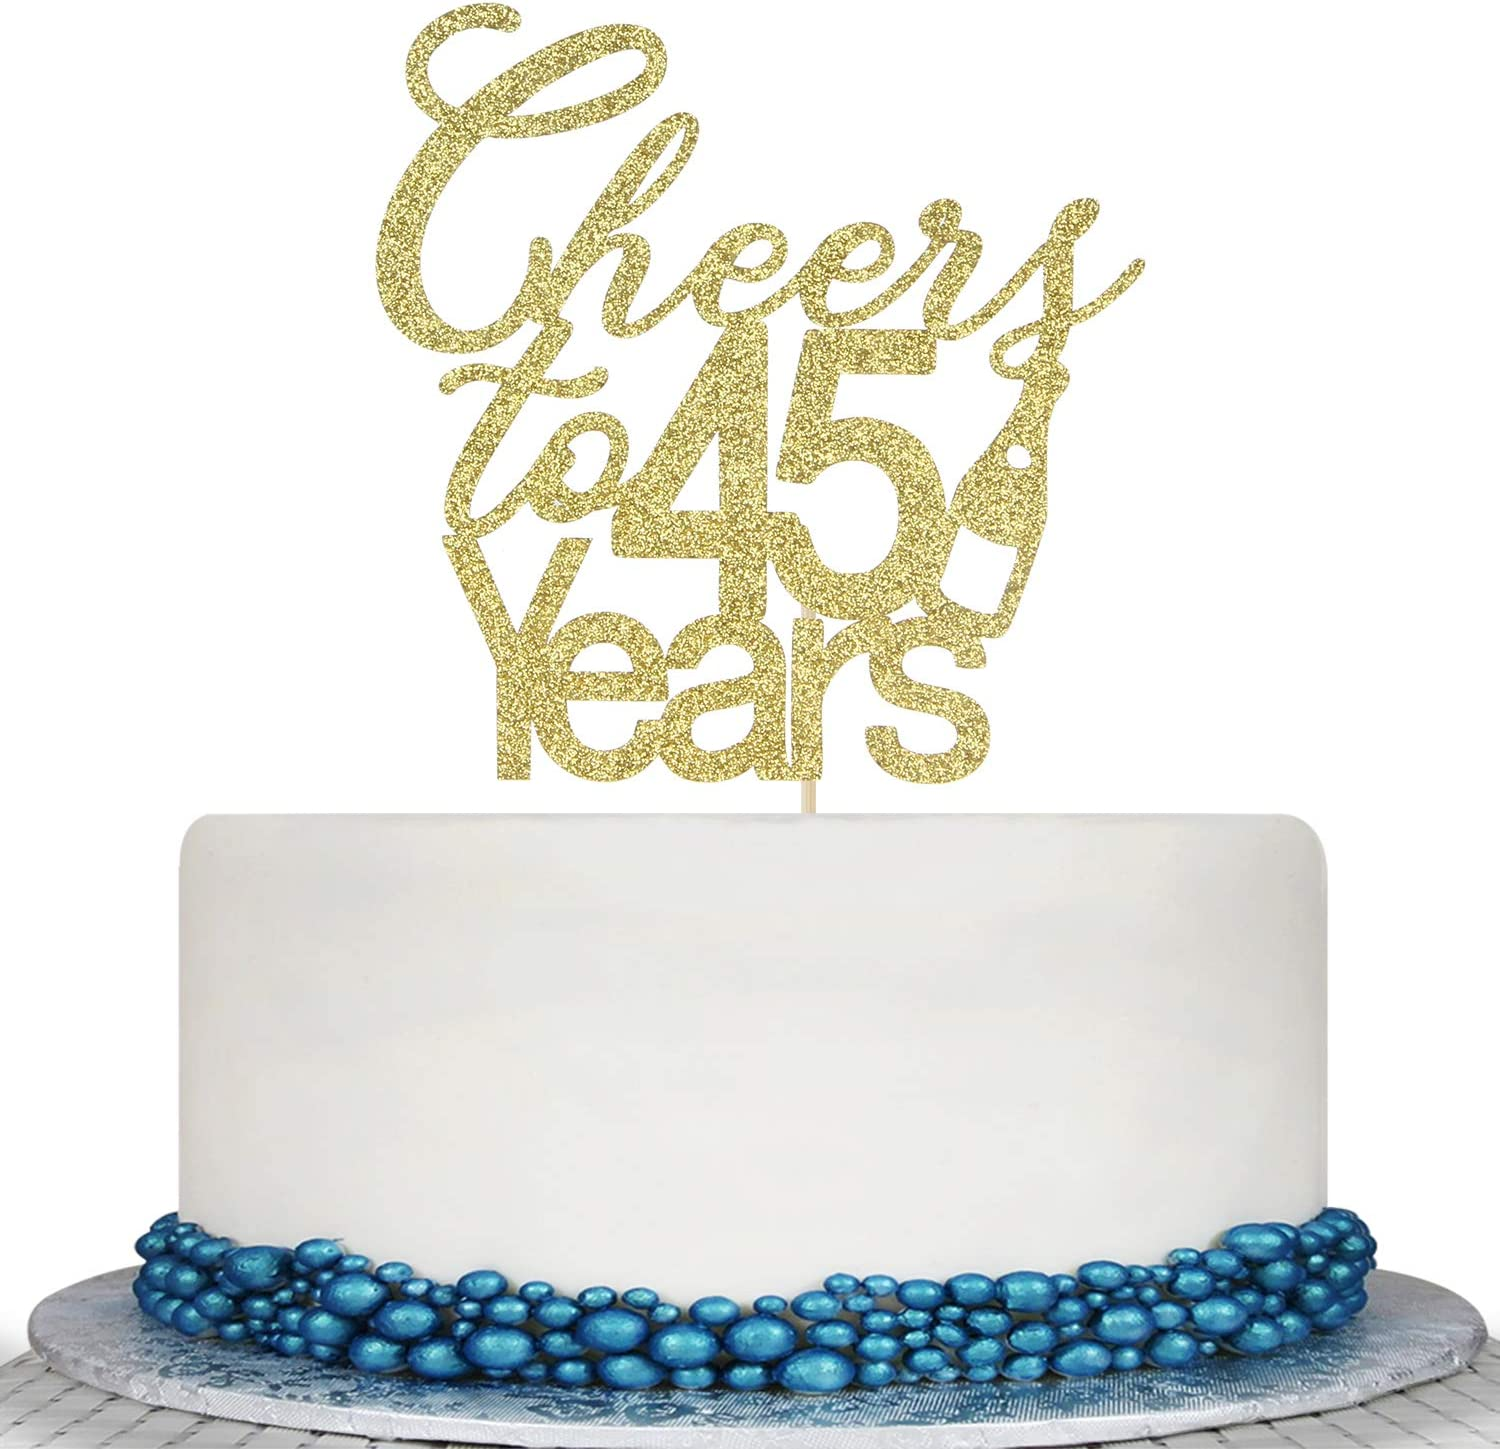 Glitter Cheers to 45 Years Cake Topper - 45th Birthday Wedding Anniversary Cake Topper -Happy 45th Birthday or Vow Renewal Party Decoration Supply Ideas